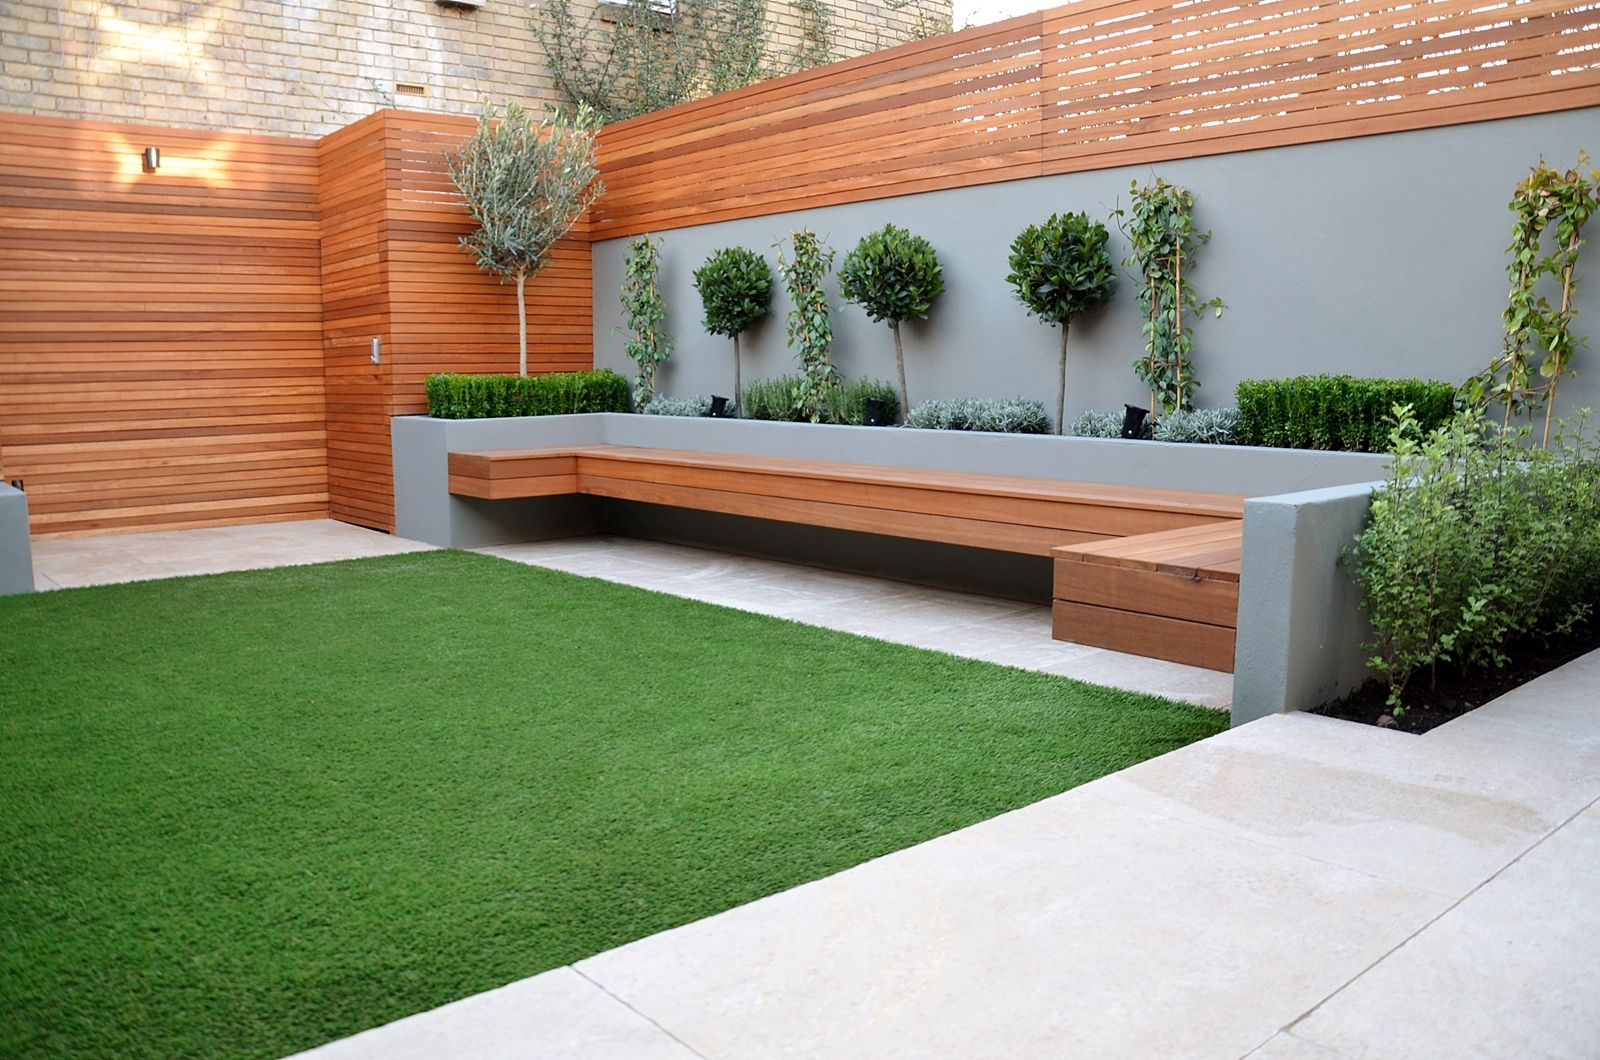 Modern low maintenance garden design clapham london for Low maintenance backyard